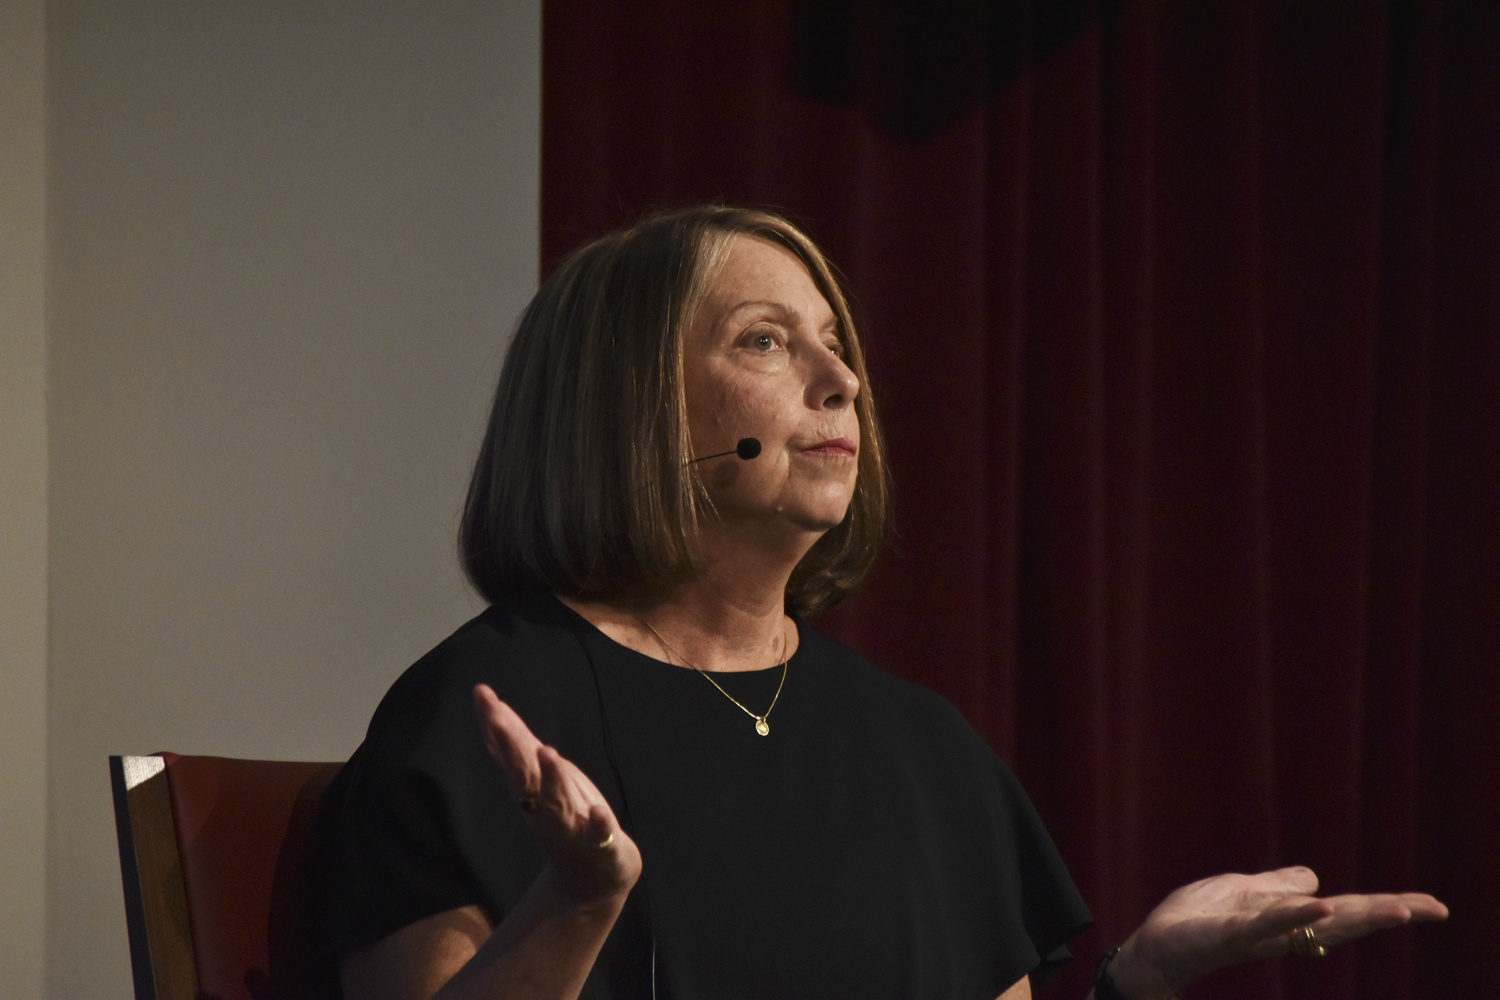 Without Ever Using Word Blog Nyt Admits >> Former Nyt Editor Jill Abramson Accused Of Plagiarism Admits